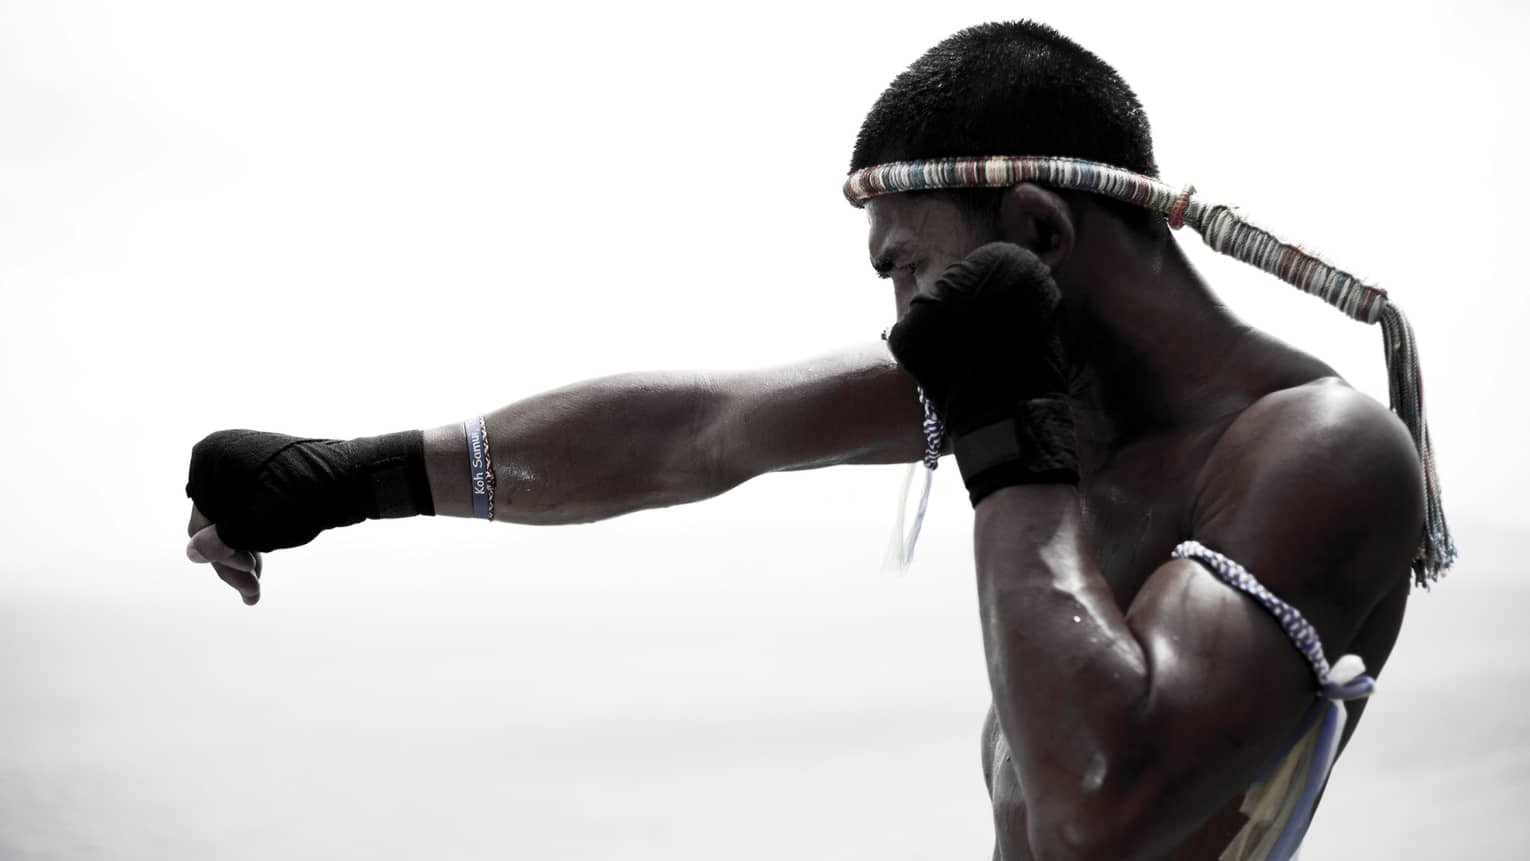 Muay Thai boxer punching, silhouetted by a white-grey background